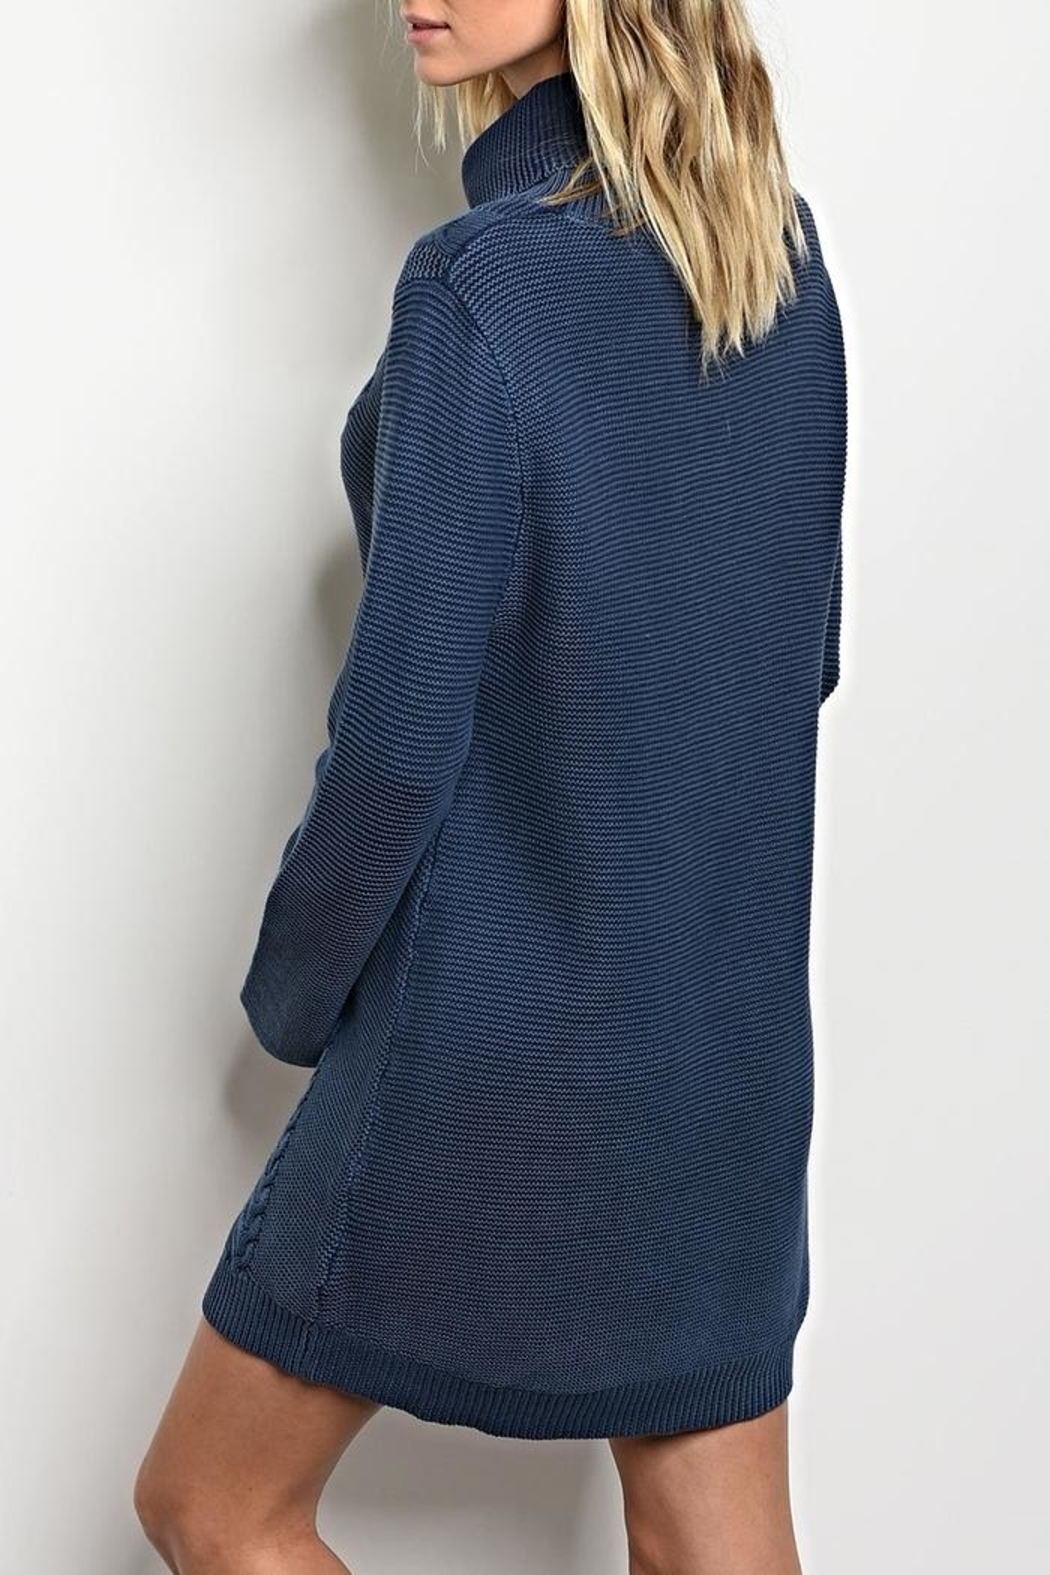 LoveRiche Turtleneck Indigo Sweater - Front Full Image